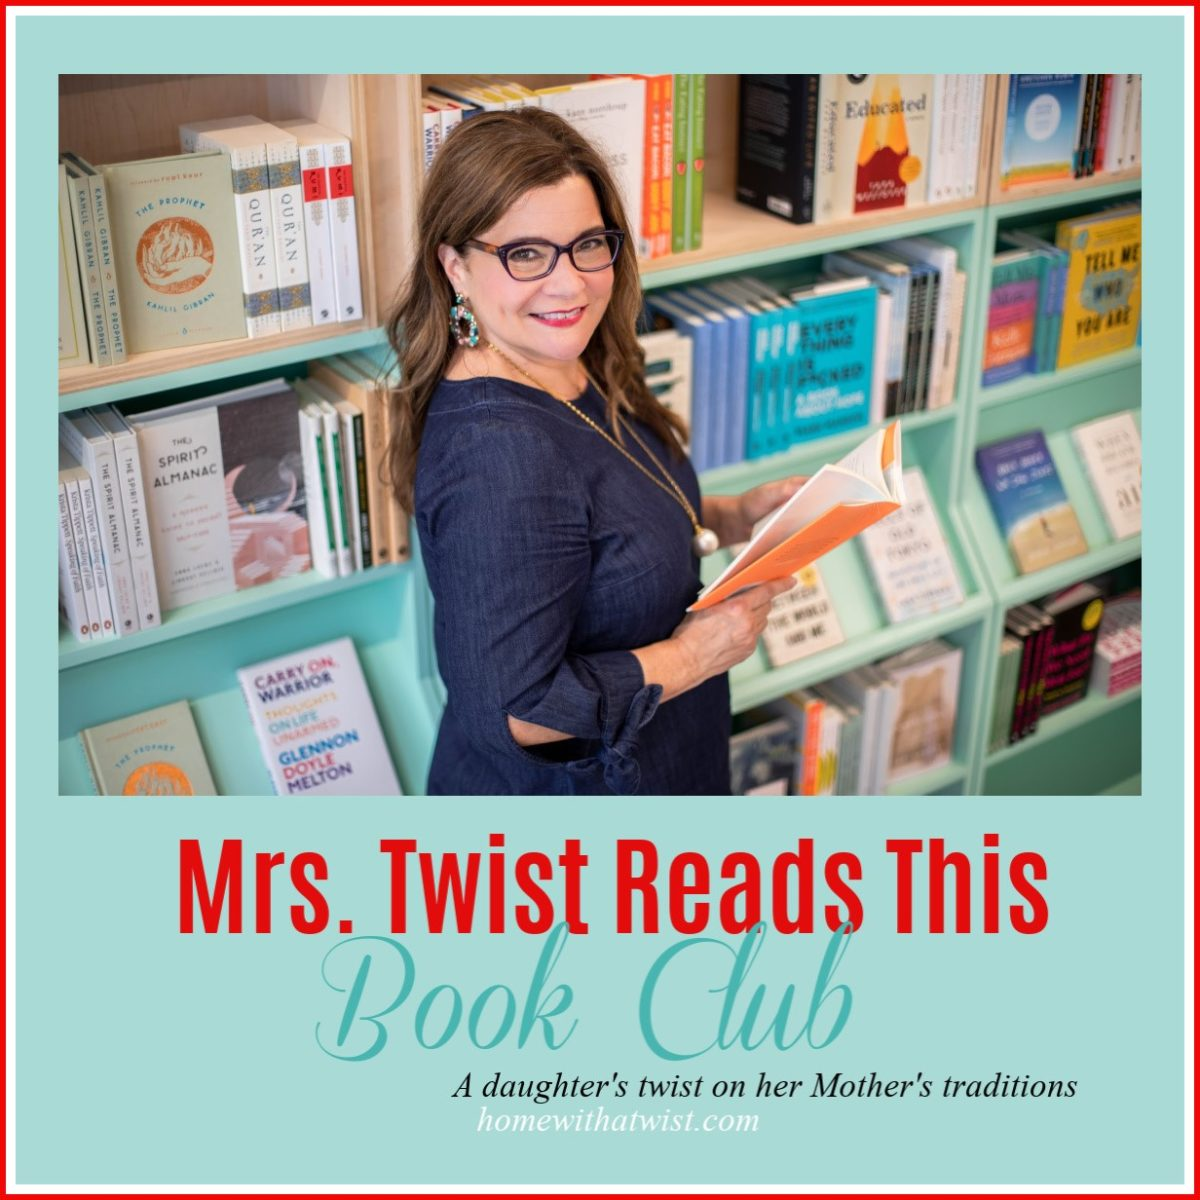 Mrs. Twist Reads This Book Club Selection and Fun Workshop in January